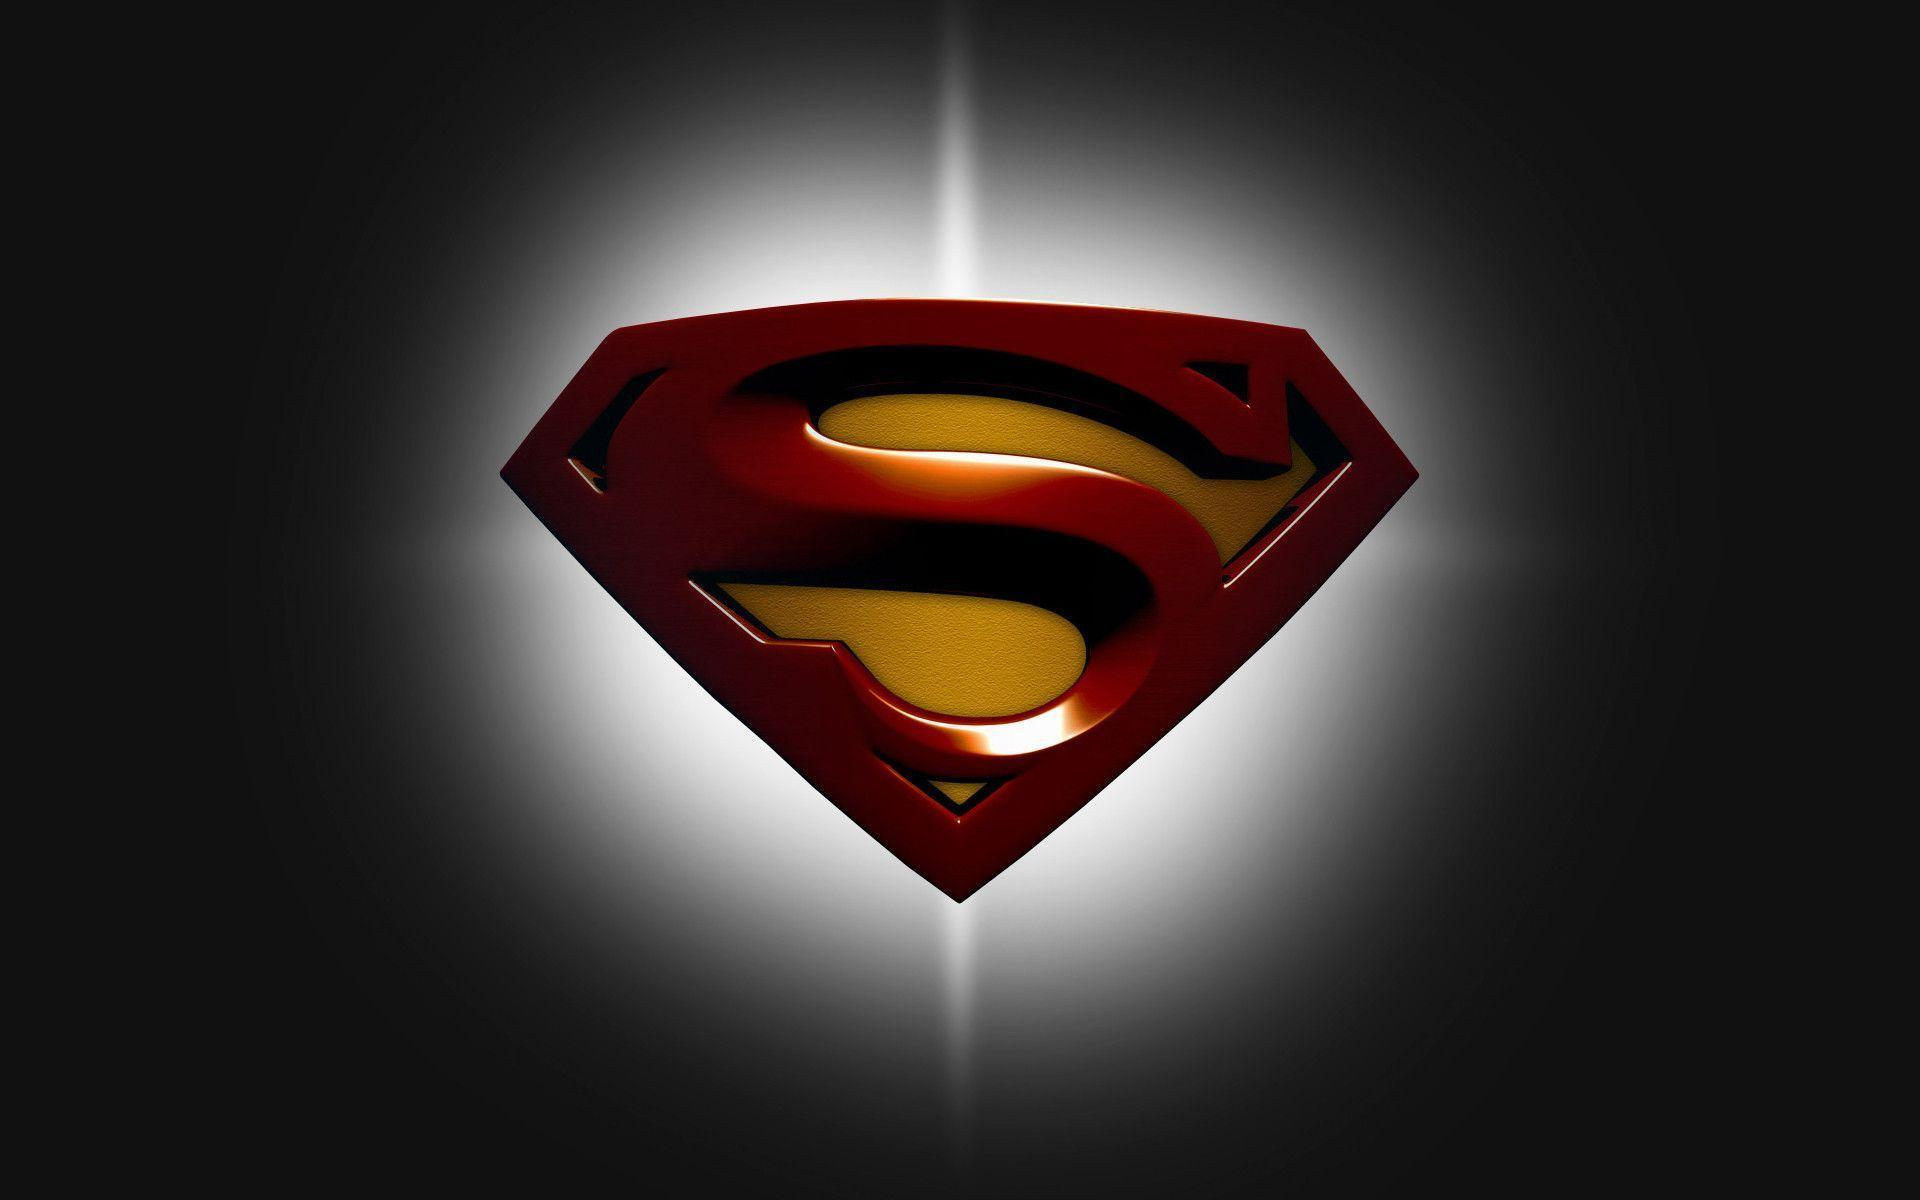 superman logo free wallpaper - photo #12